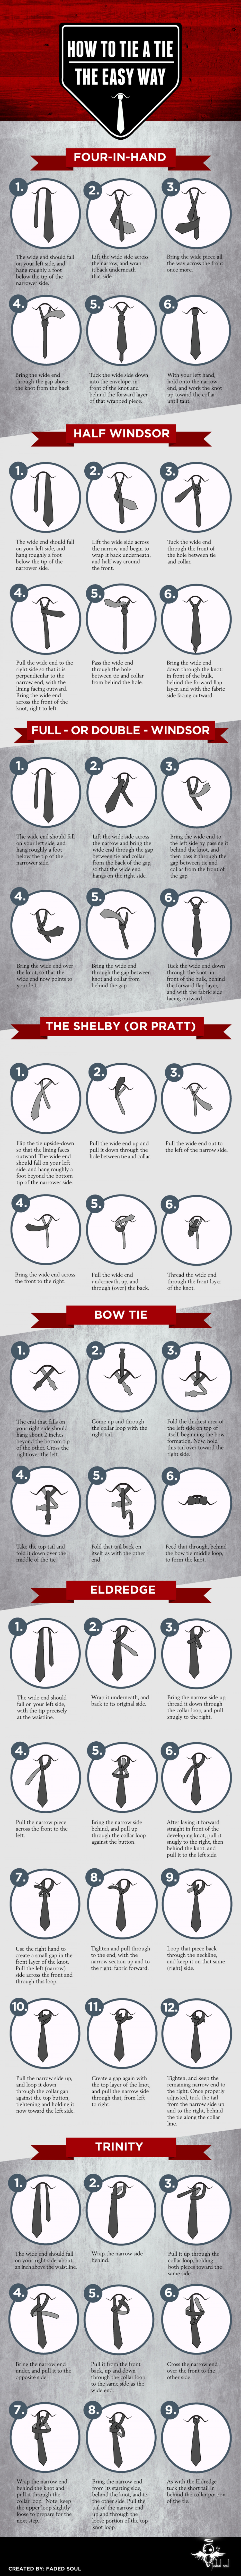 How To Tie A Tie The Easy Way Infographic